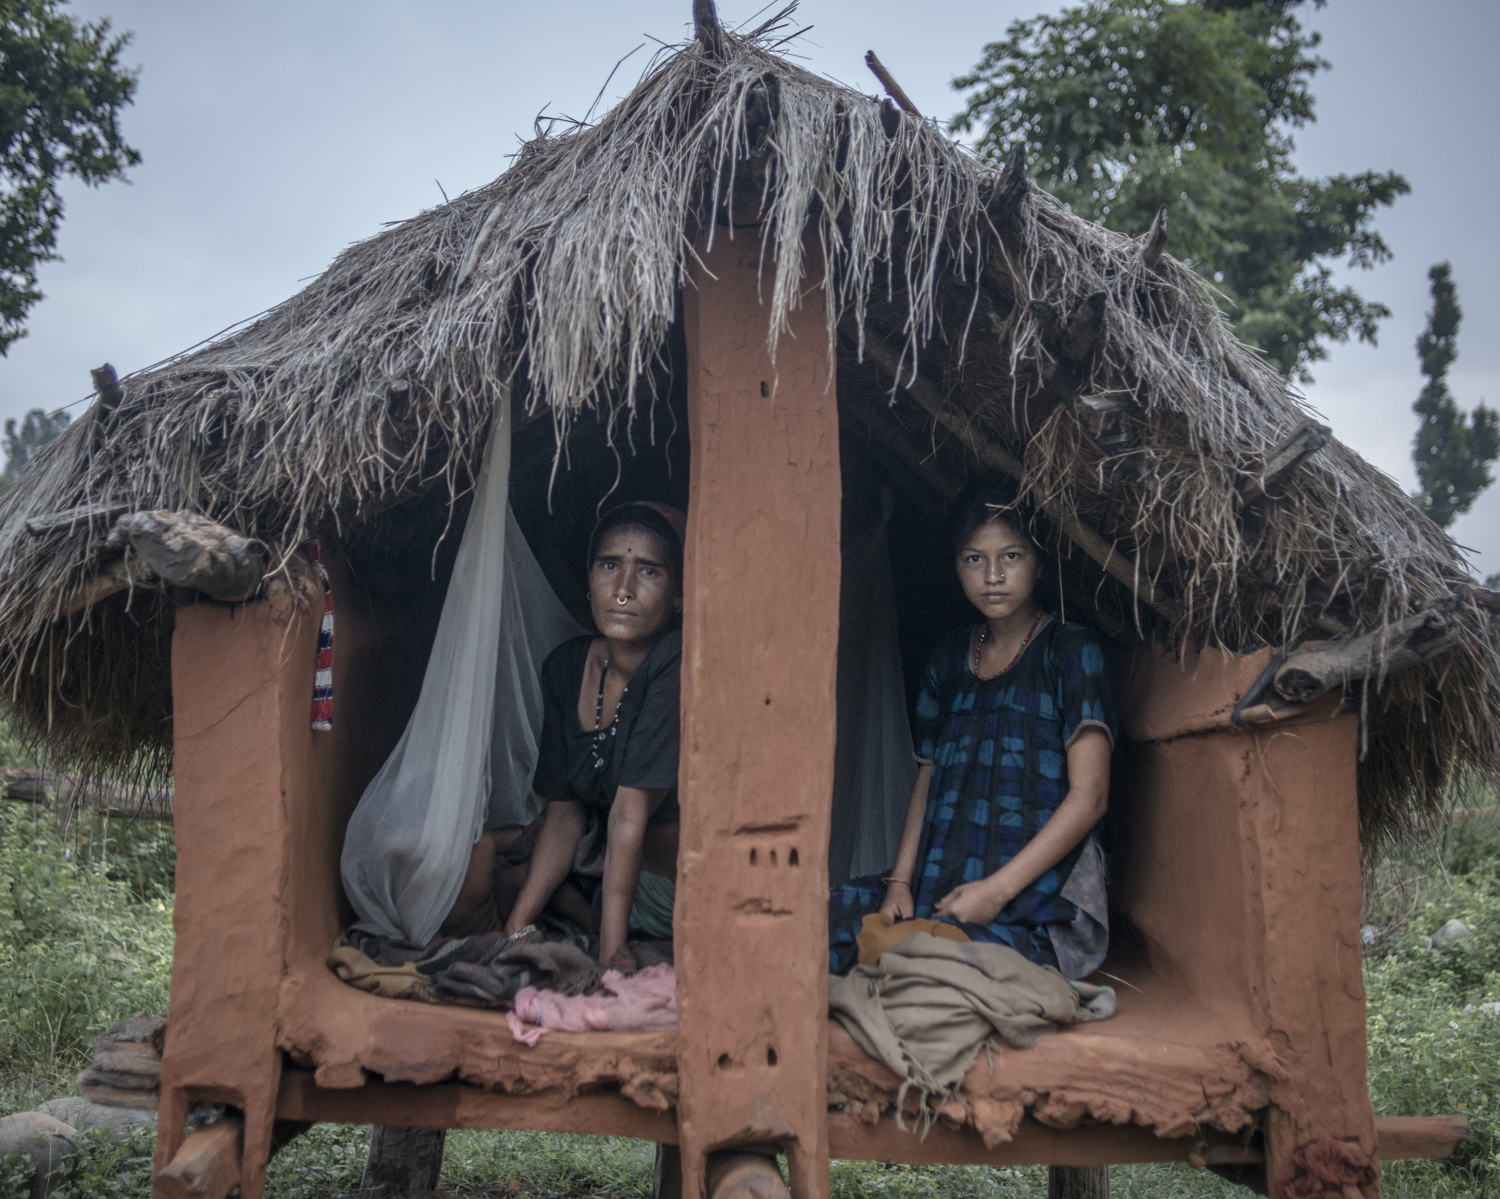 Chandra Tiruva, 34, and Mangu Bika, 14, in a shed in Surkhet District.